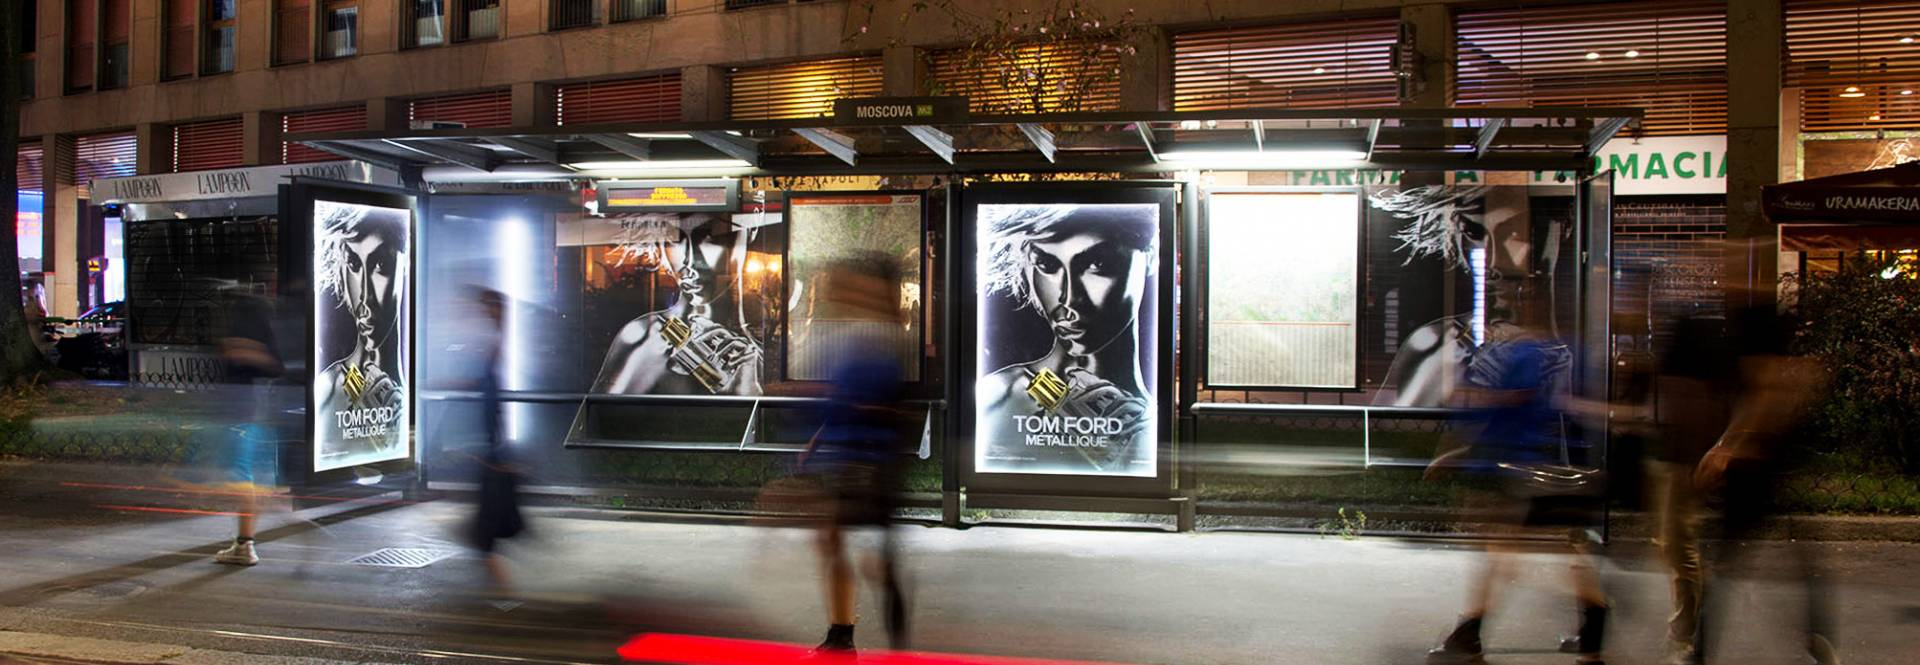 Brand Shelters in Milan IGPDecaux for Tom Ford